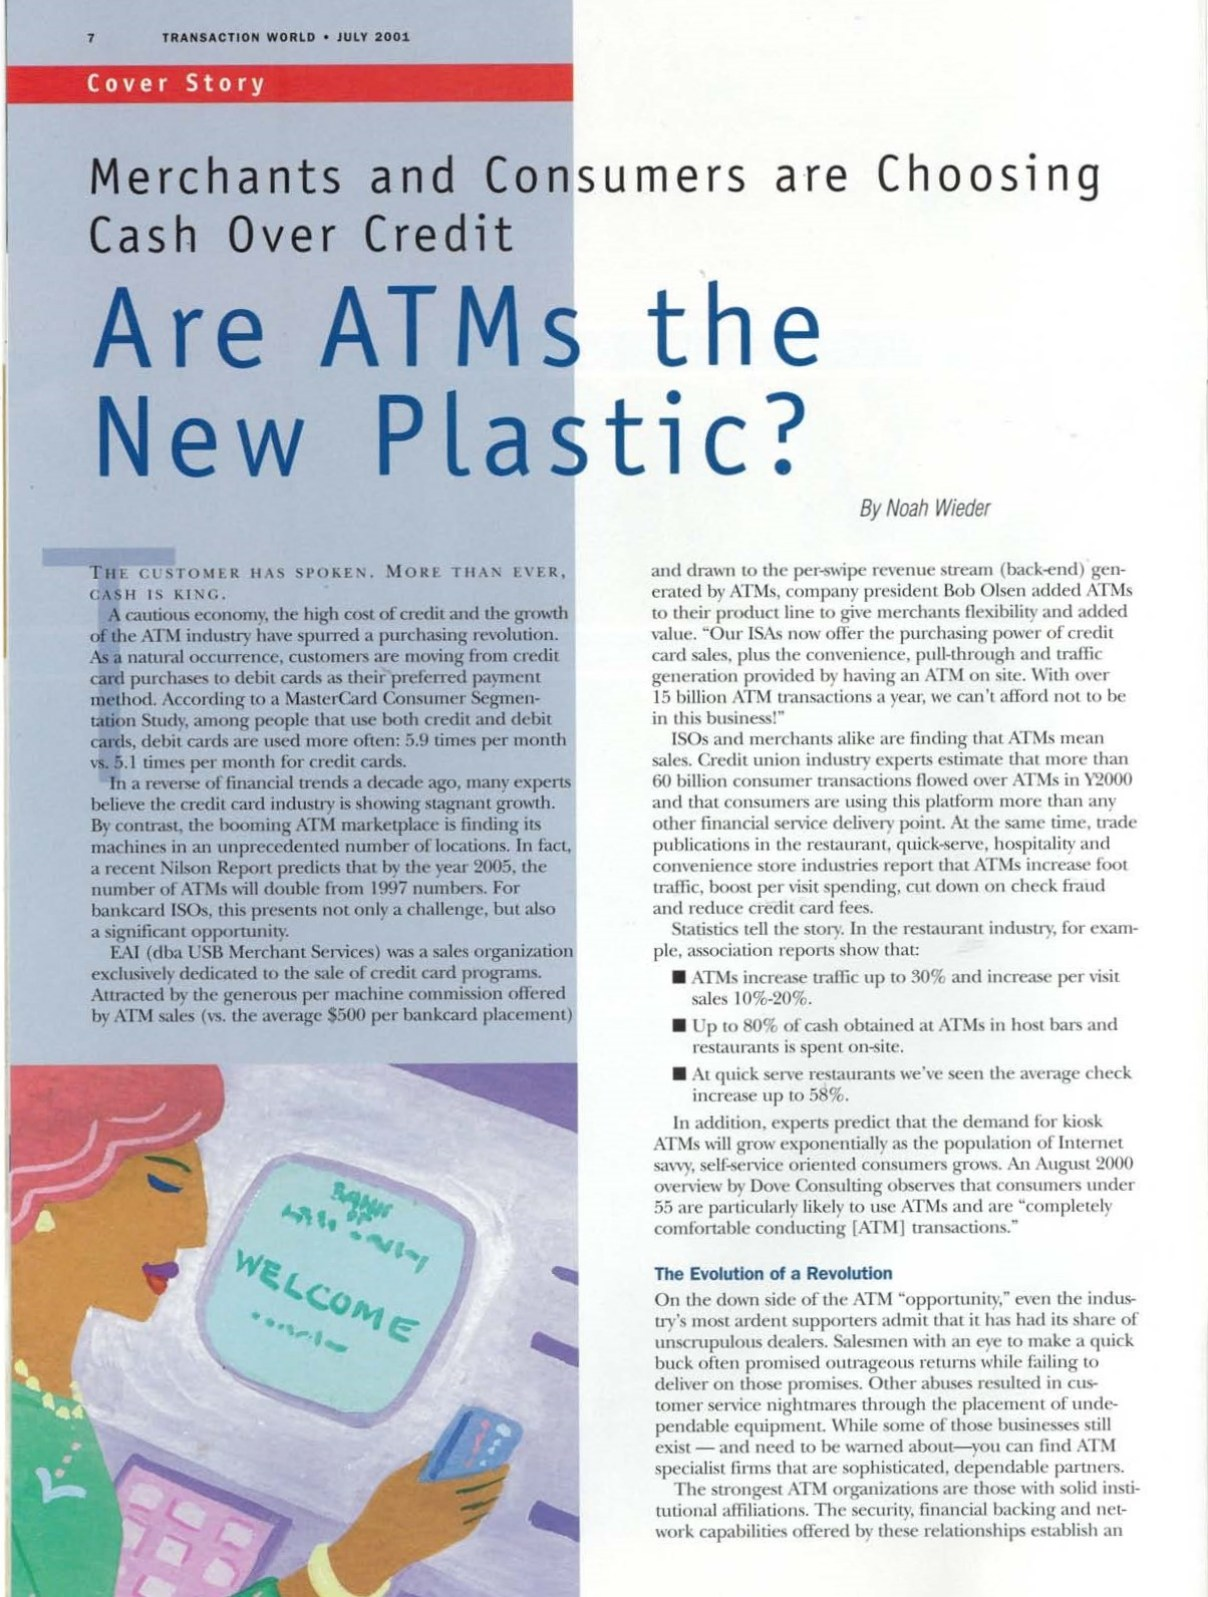 Transaction World Magazine Volume 1, Issue 6, 2001 page 7